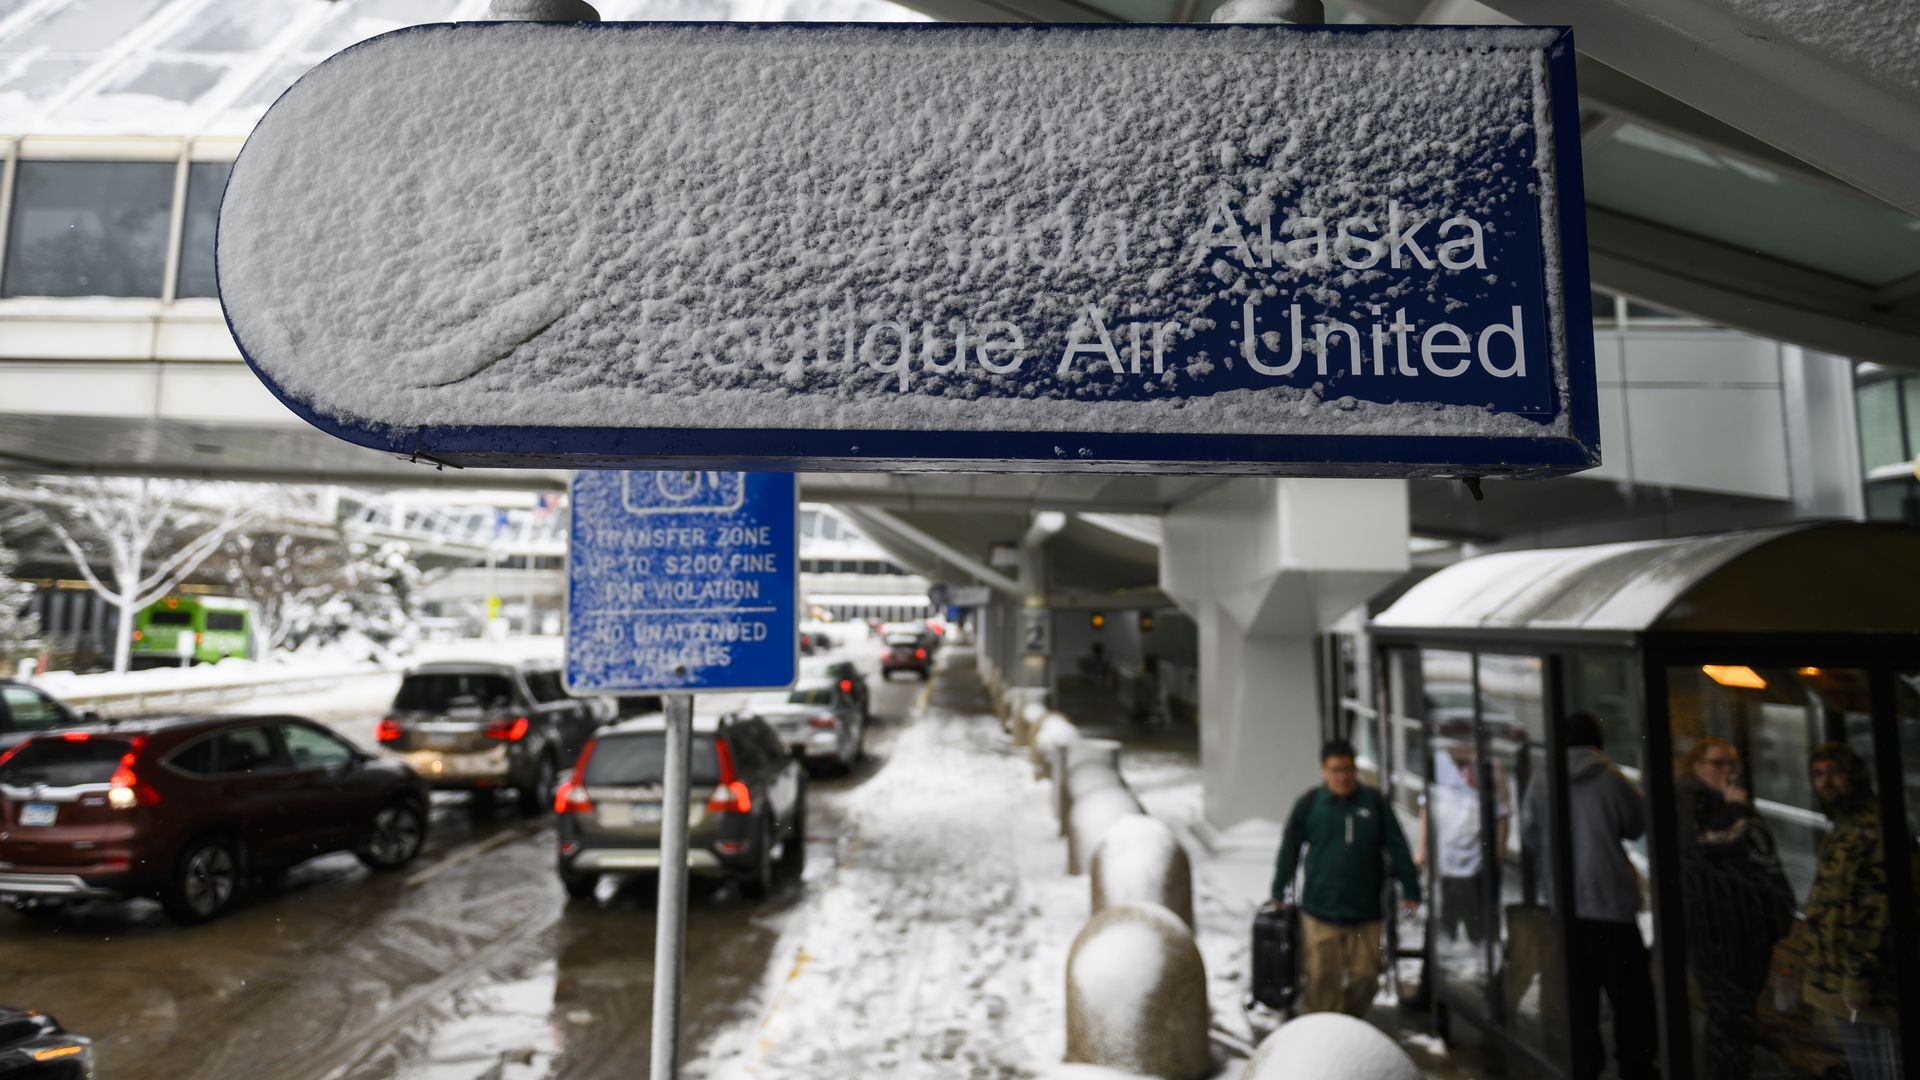 Signage outside Minneapolis-St. Paul International Airport is caked in snow after a blizzard struck overnight on November 27, 2019 in Bloomington, Minnesota.